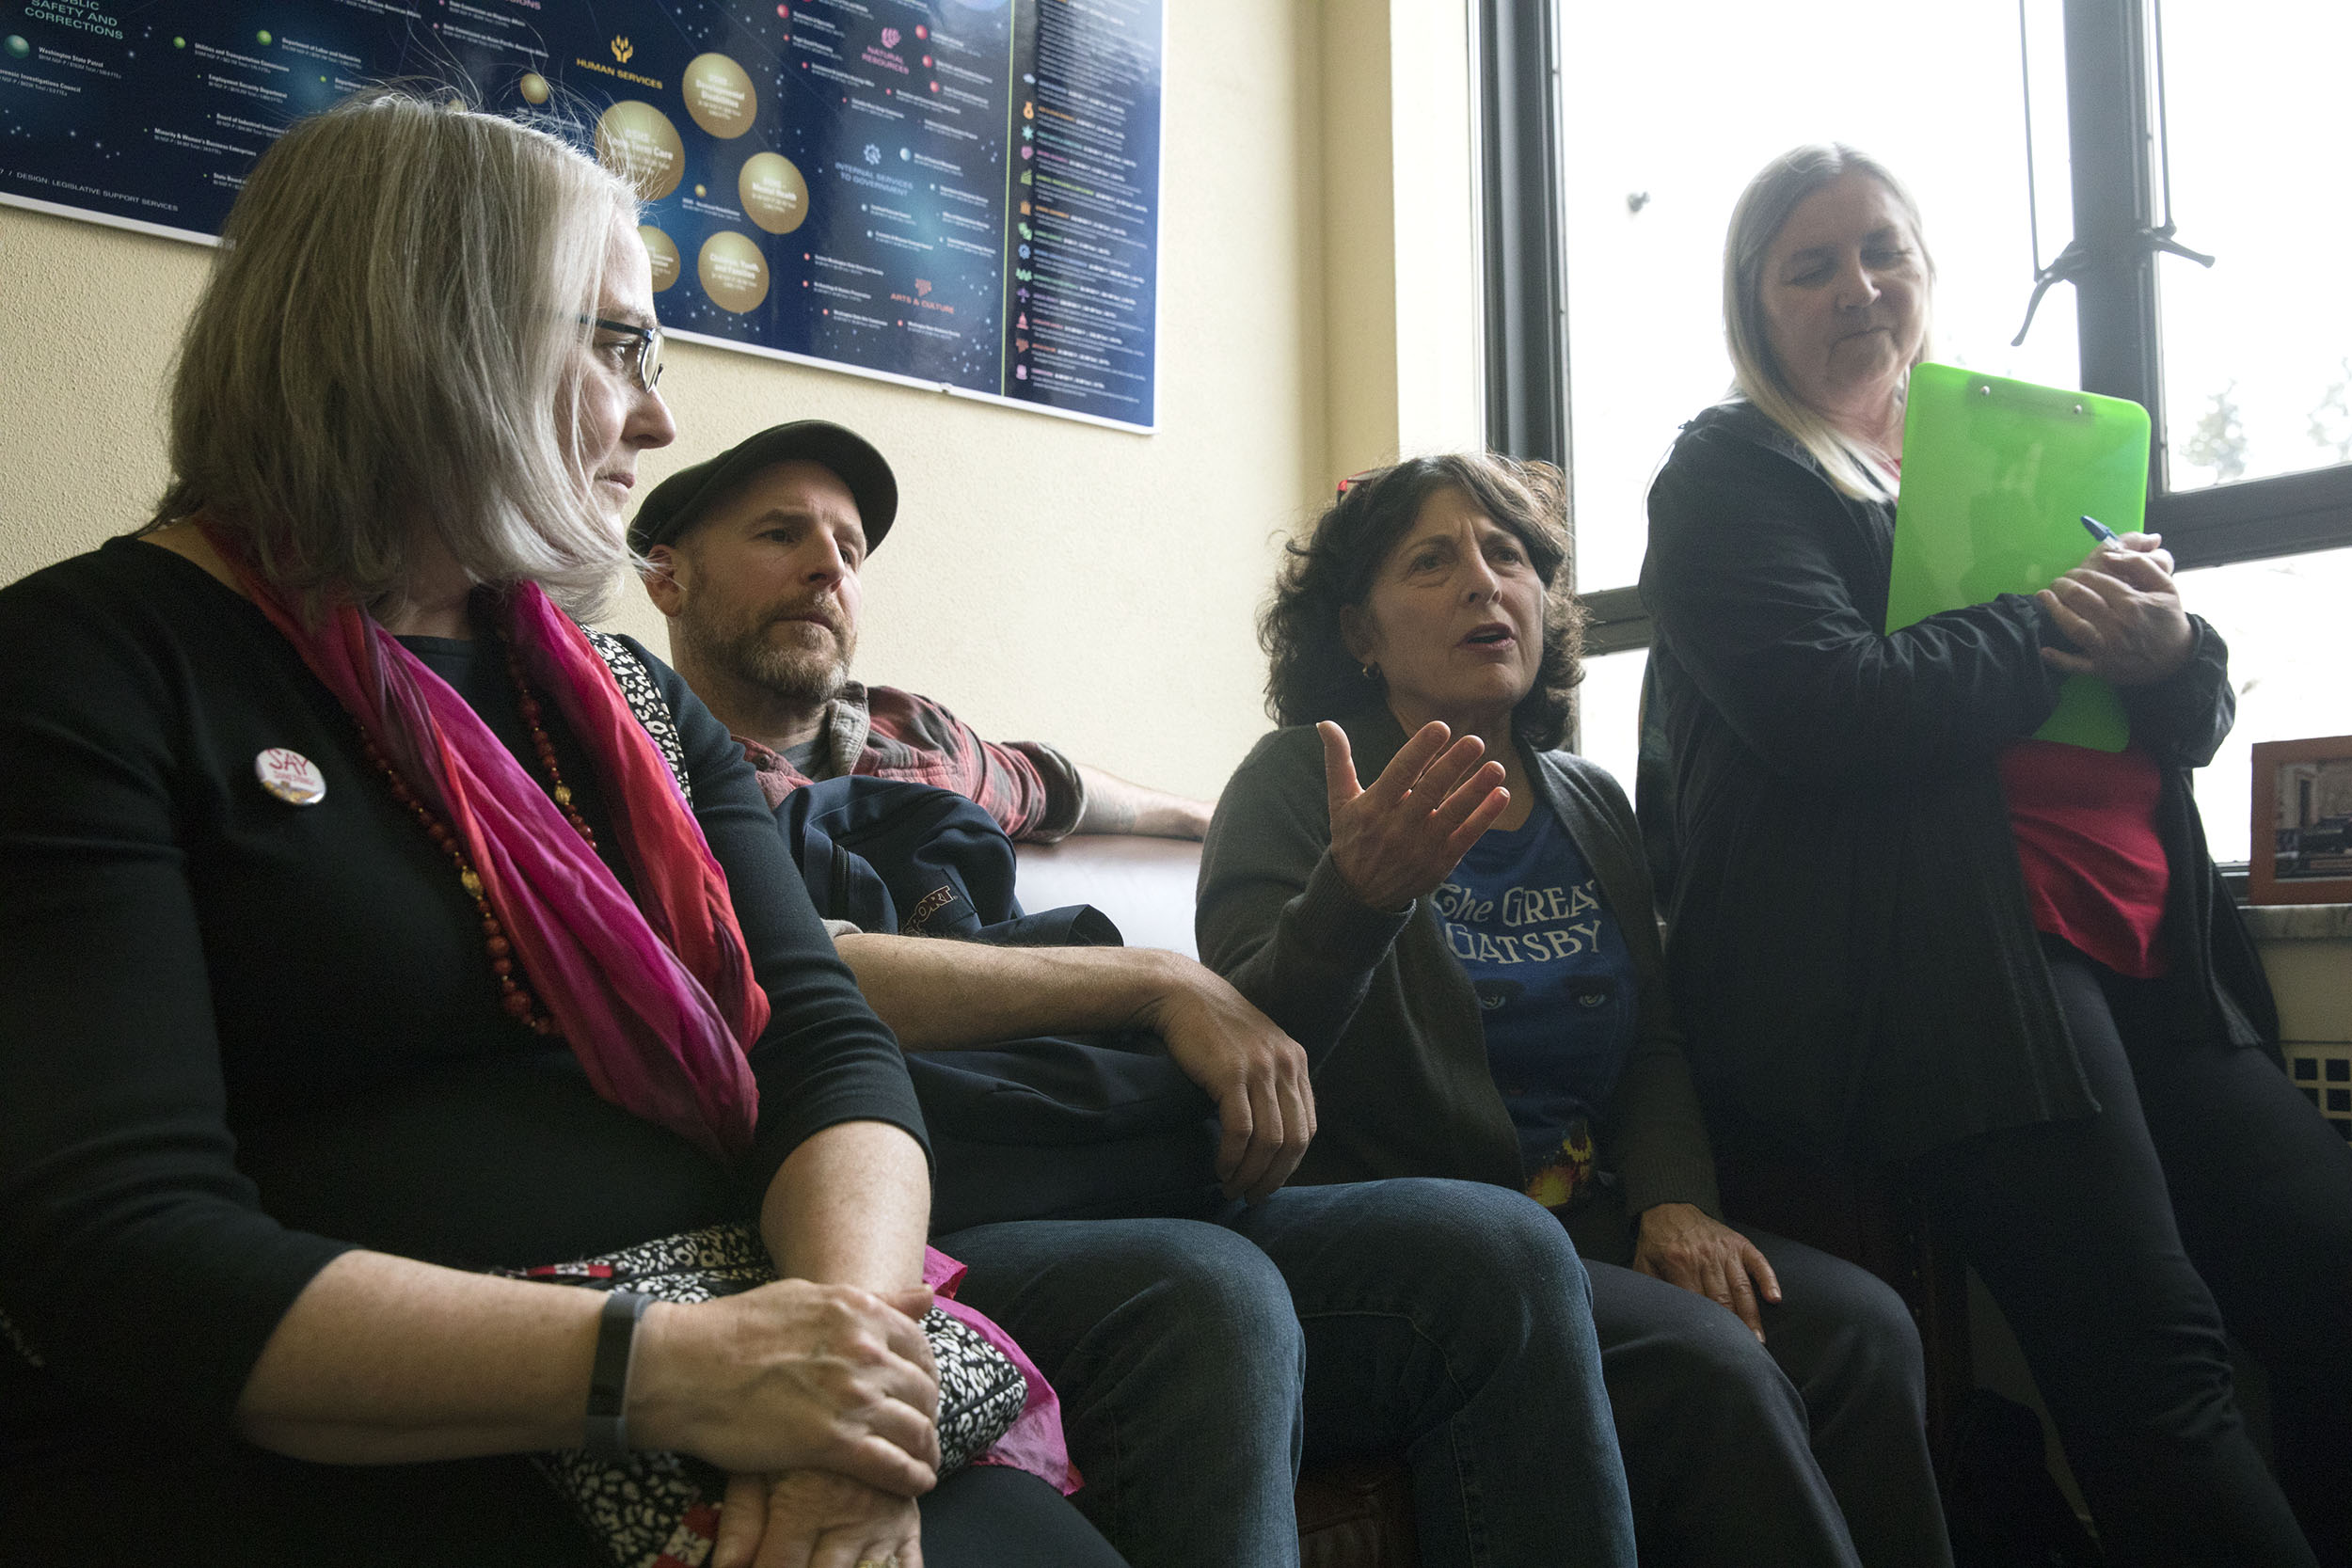 Lee Micklin of Cleveland STEM High School (center right) sits with other librarians and talks with Washington state Sen. Reuven Carlyle during a group lobbying effort at his Olympia office, April 2, 2019. (Photo by Matt M. McKnight/Crosscut)